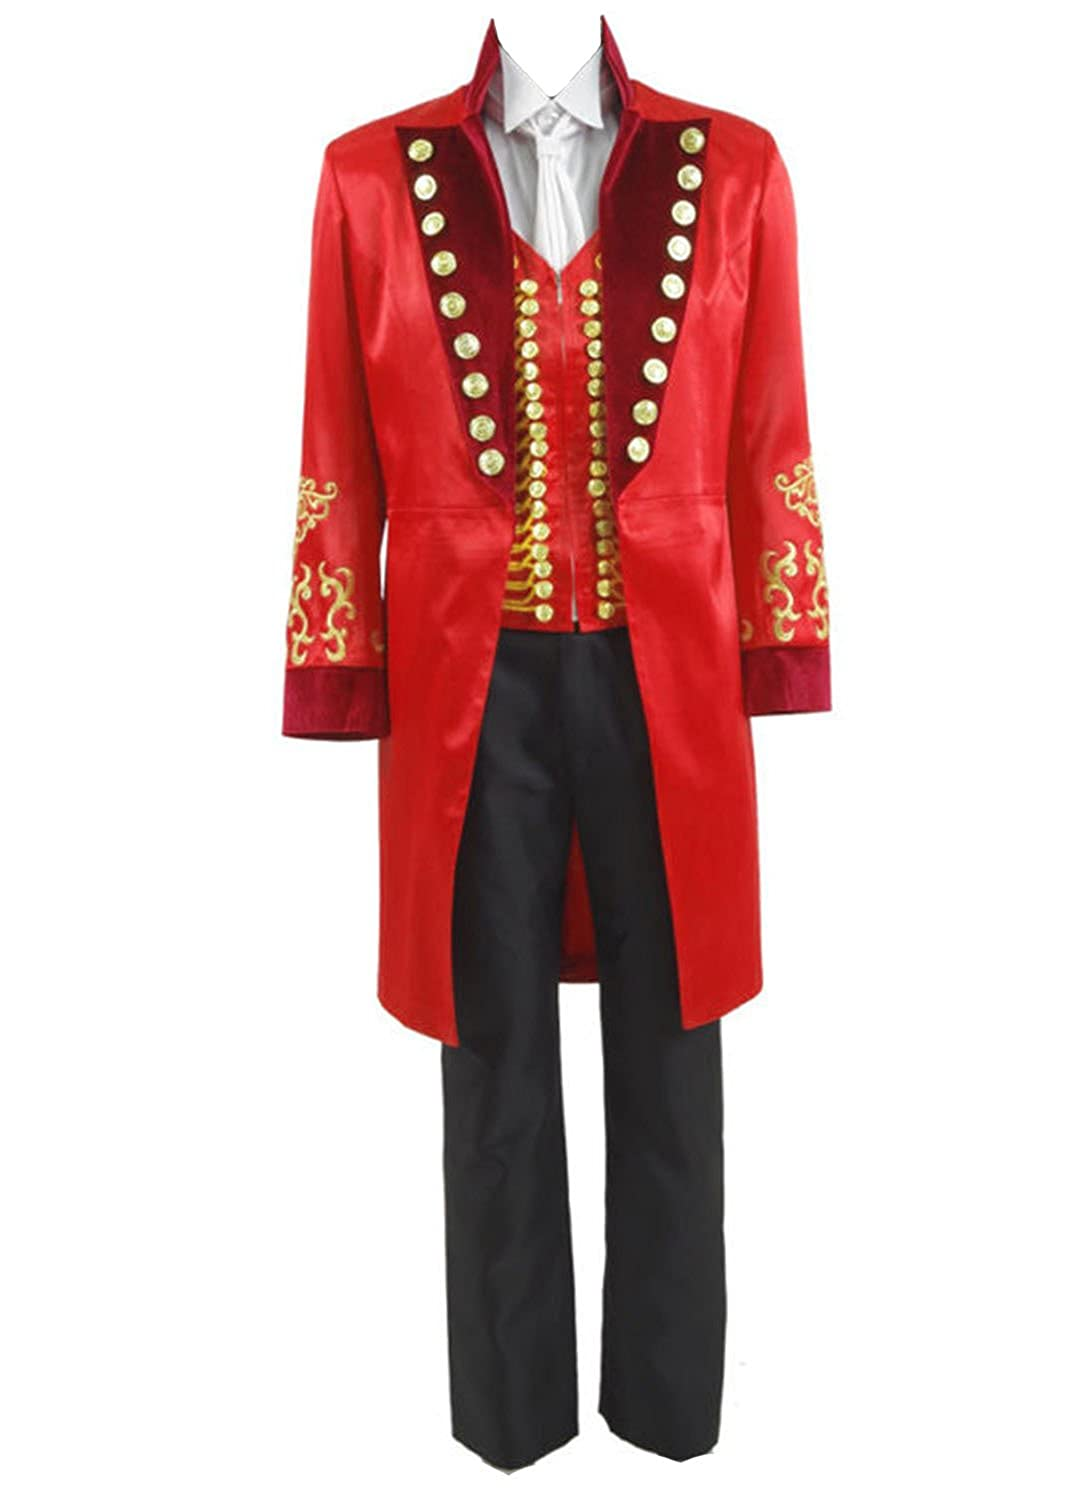 Men's Stage Performance Suits Halloween Outfit Cosplay Costume ringmaster greatest showman style